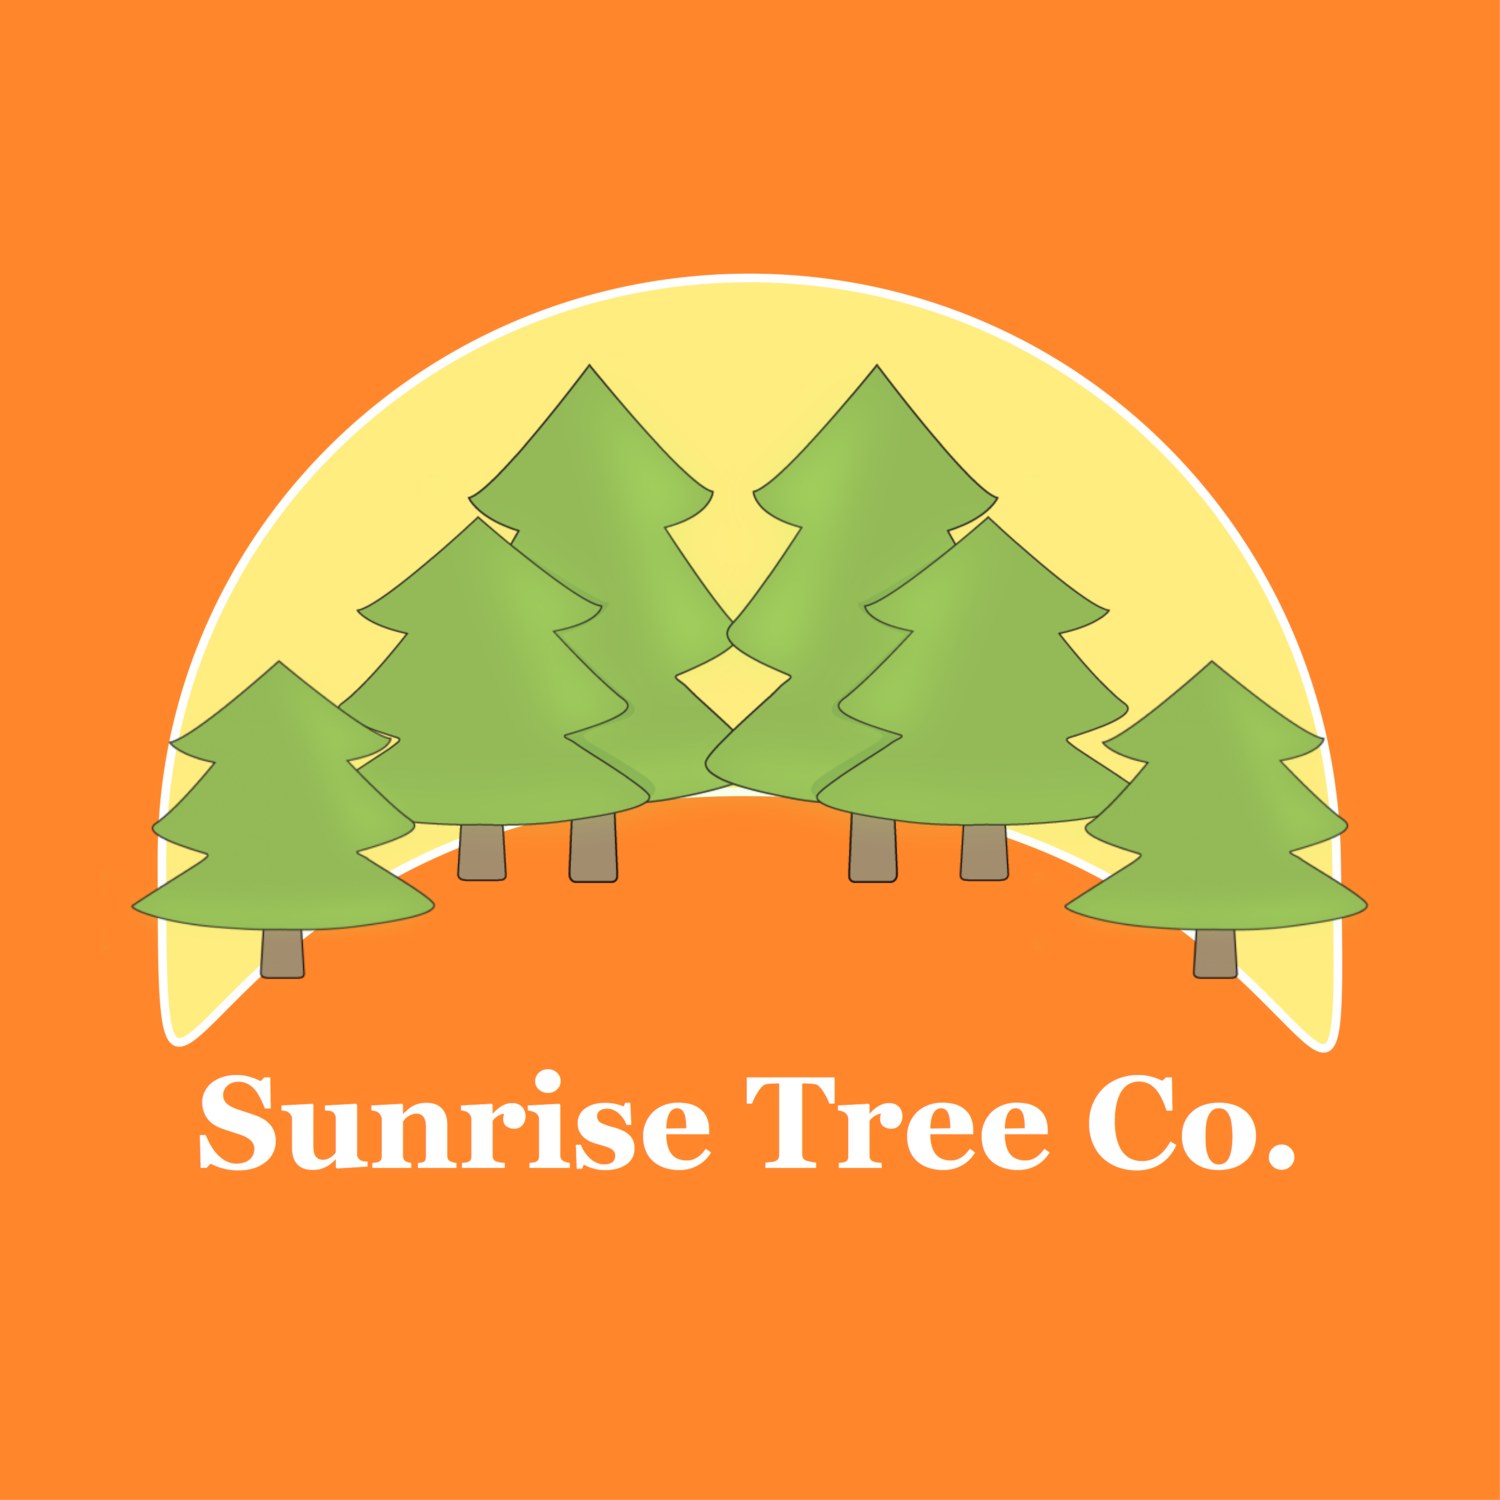 Sunrise Tree Co.